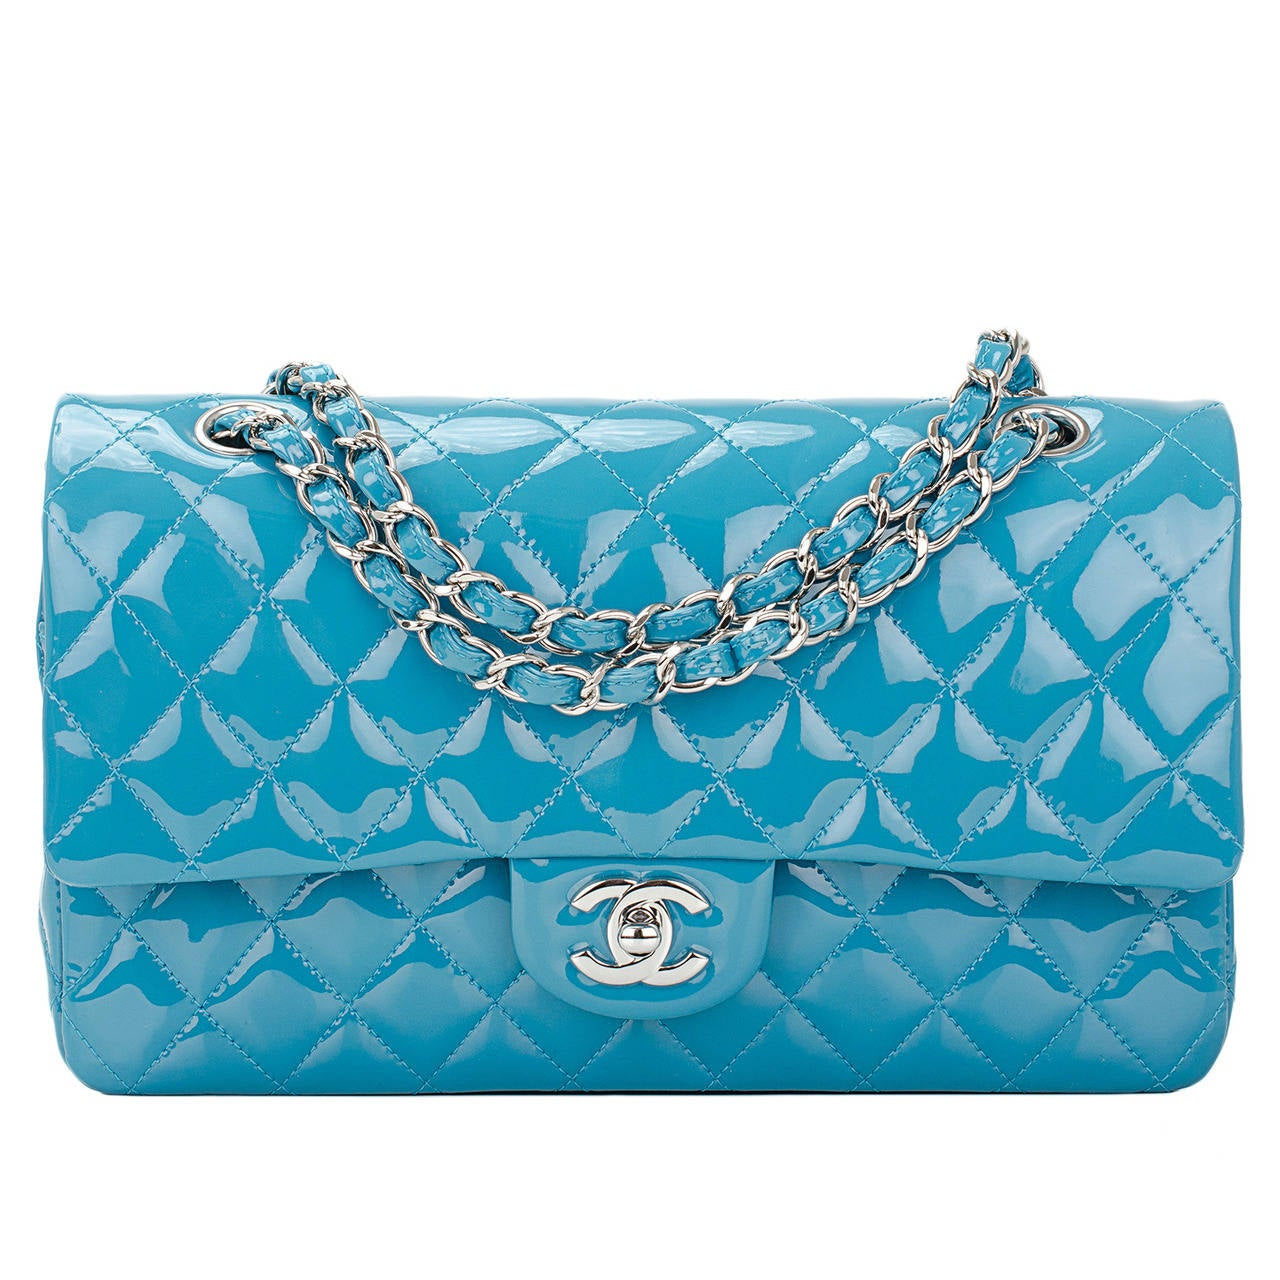 Chanel Turquoise Quilted Patent Medium Classic Double Flap Bag For Sale